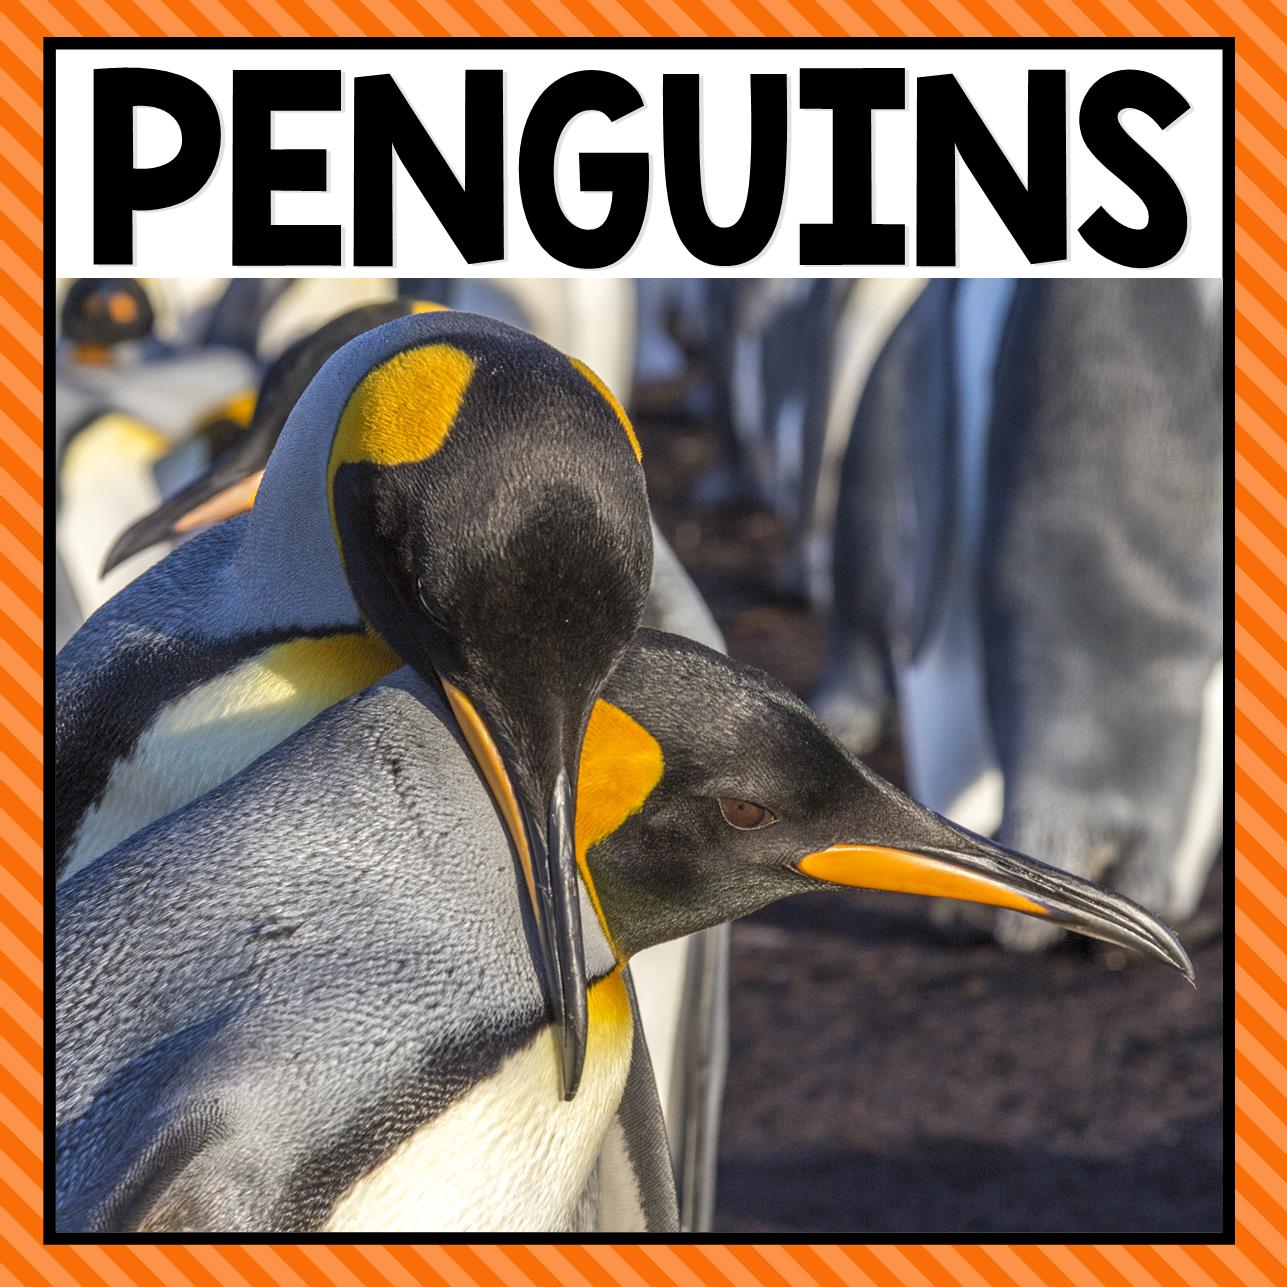 There are so many different penguin activities that you can do at home or in the classroom. This page allows you to quickly see our favorite penguin ideas, activities and printables that have been featured on A Dab of Glue Will Do.